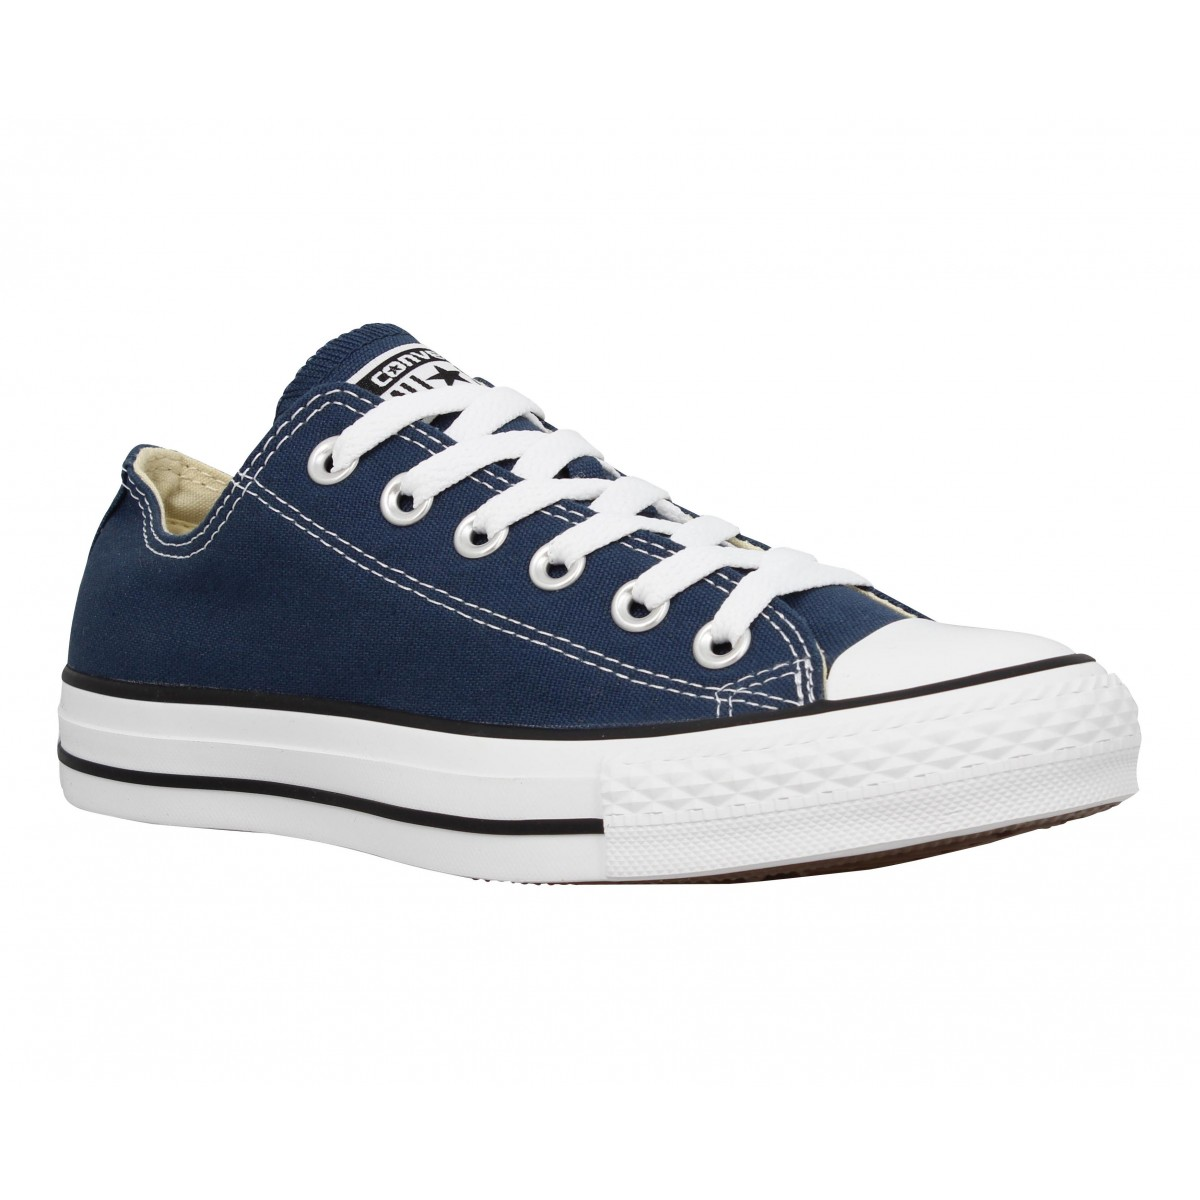 Baskets CONVERSE Chuck Taylor All Star toile Homme Marine